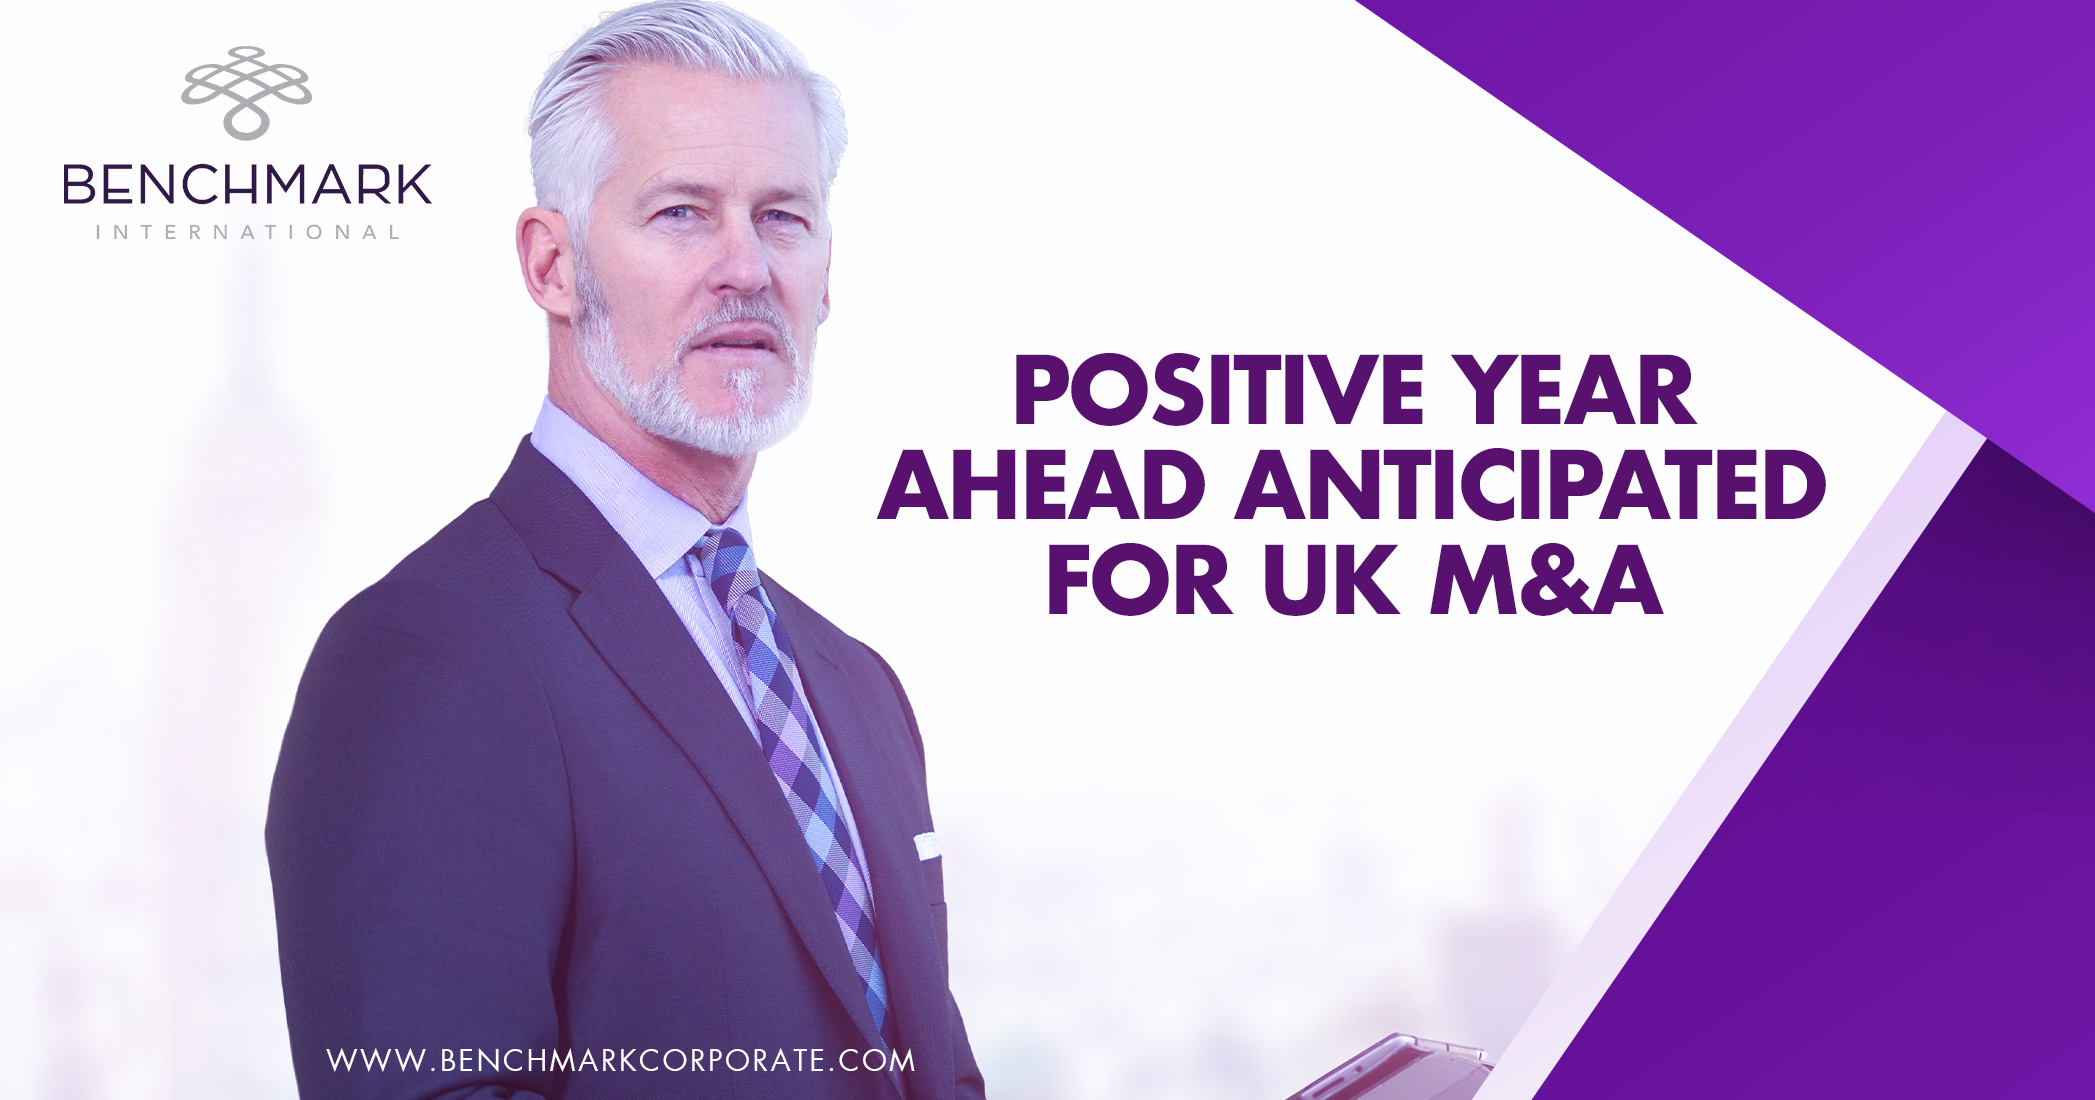 Positive Year Ahead Anticipated for UK M&A